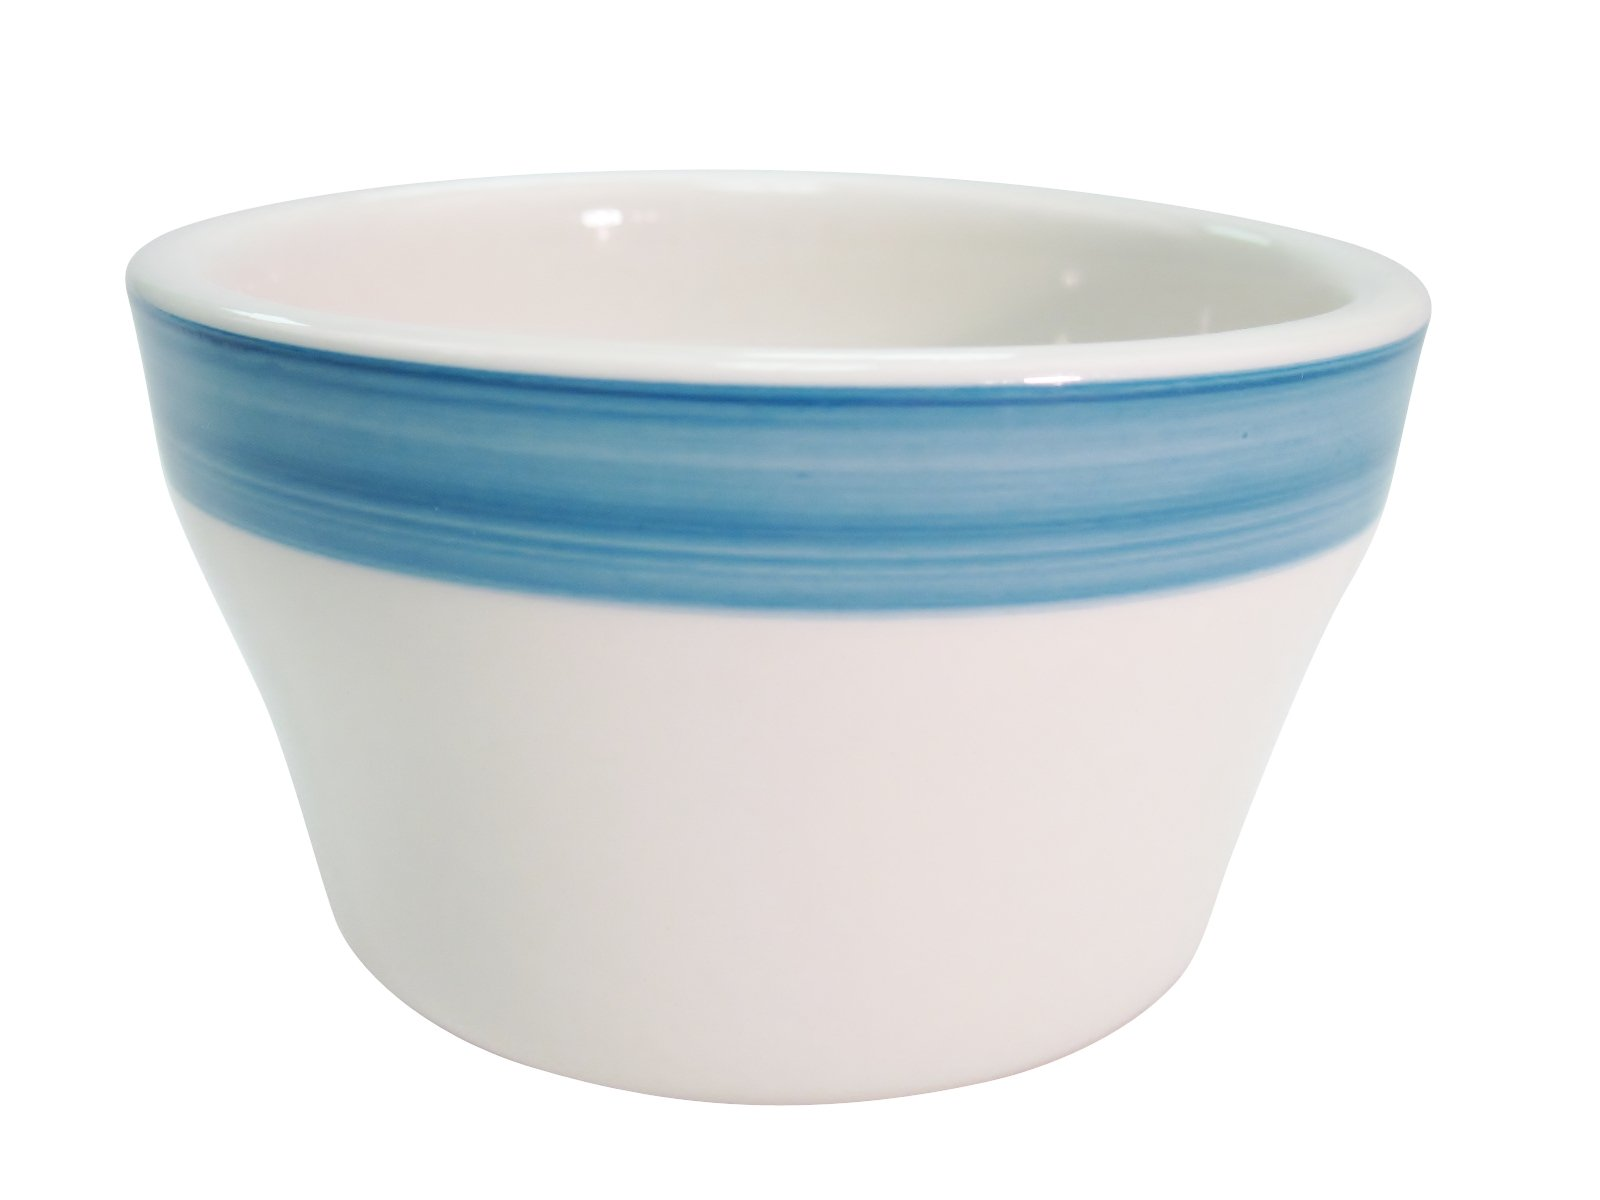 CAC China R-4-BLUE Rainbow 4-Inch Blue Stoneware Bouillon, 7.25-Ounce, Box of 36